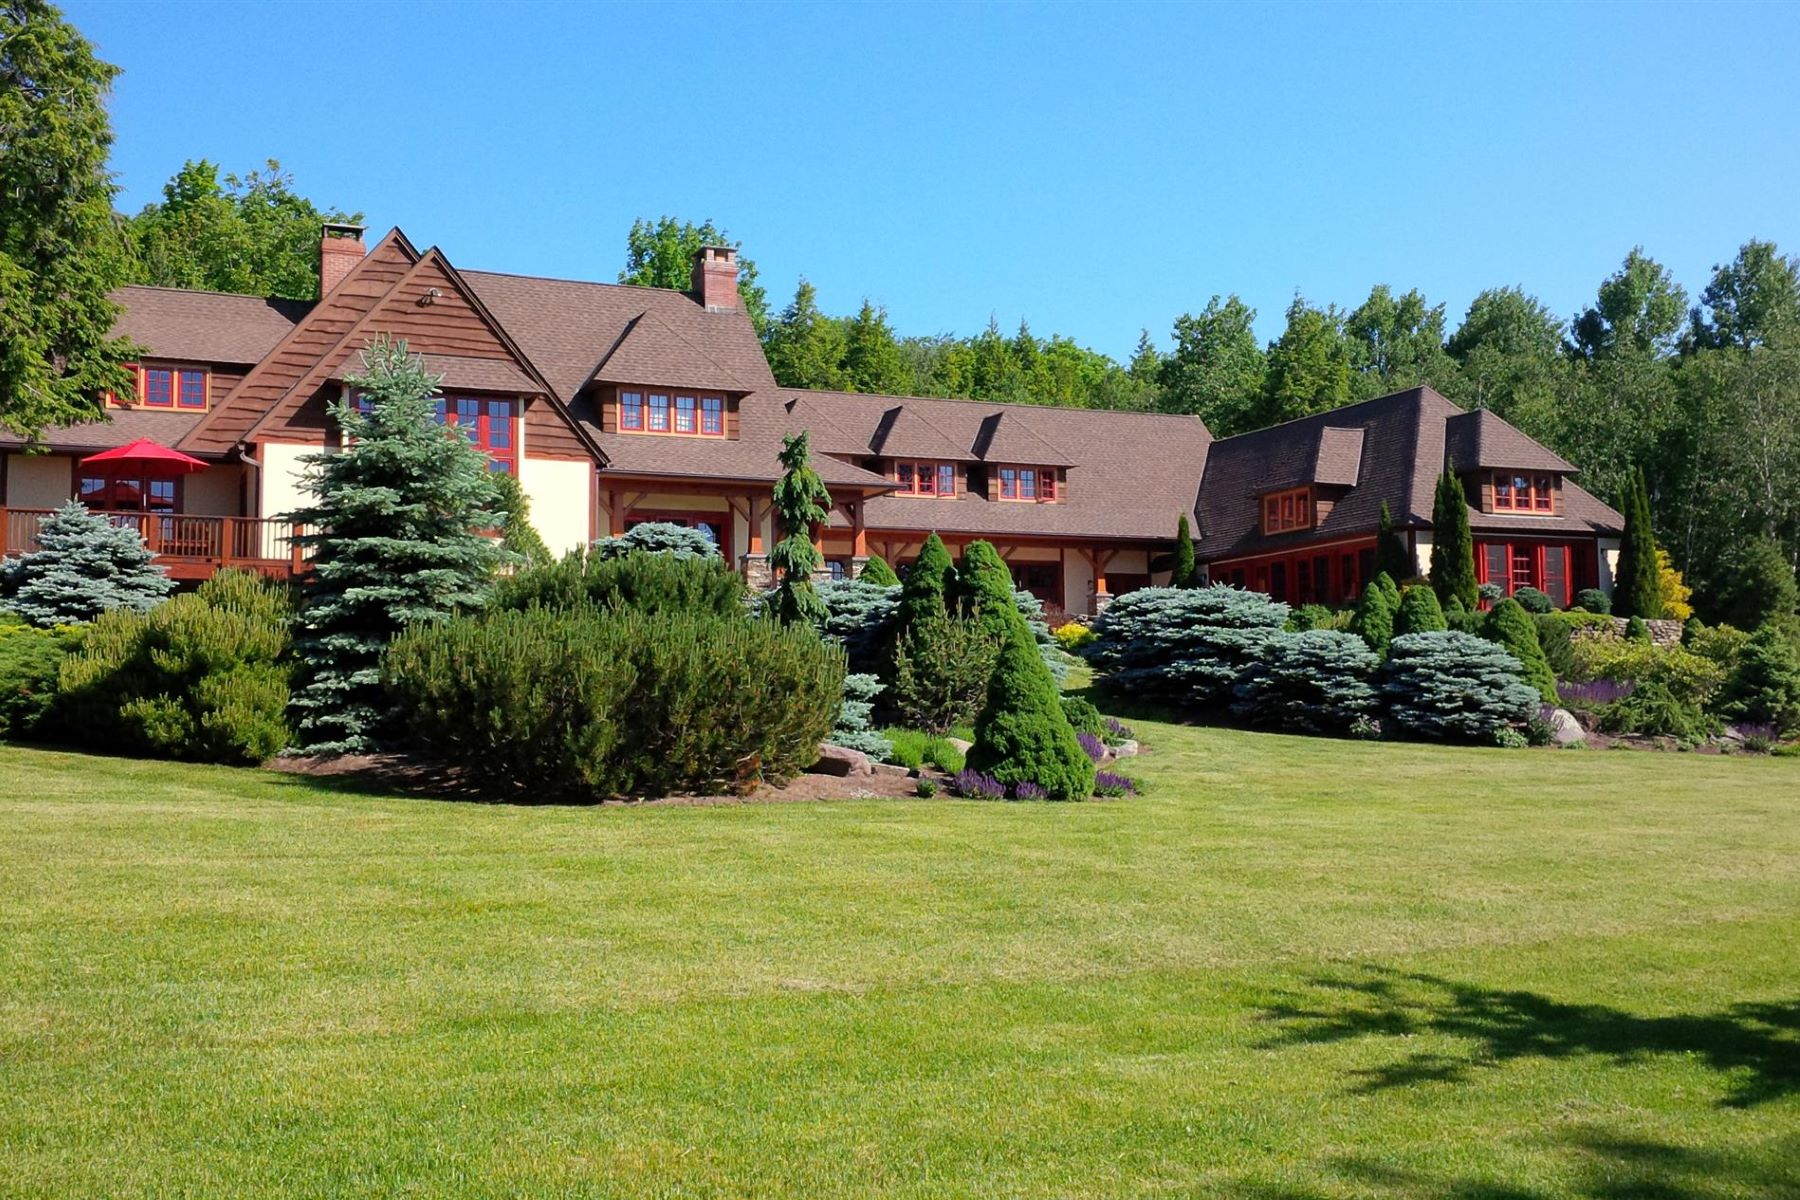 Additional photo for property listing at Hunter Mountain Retreat 54 Blackberry Dr. Jewett, New York 12444 United States